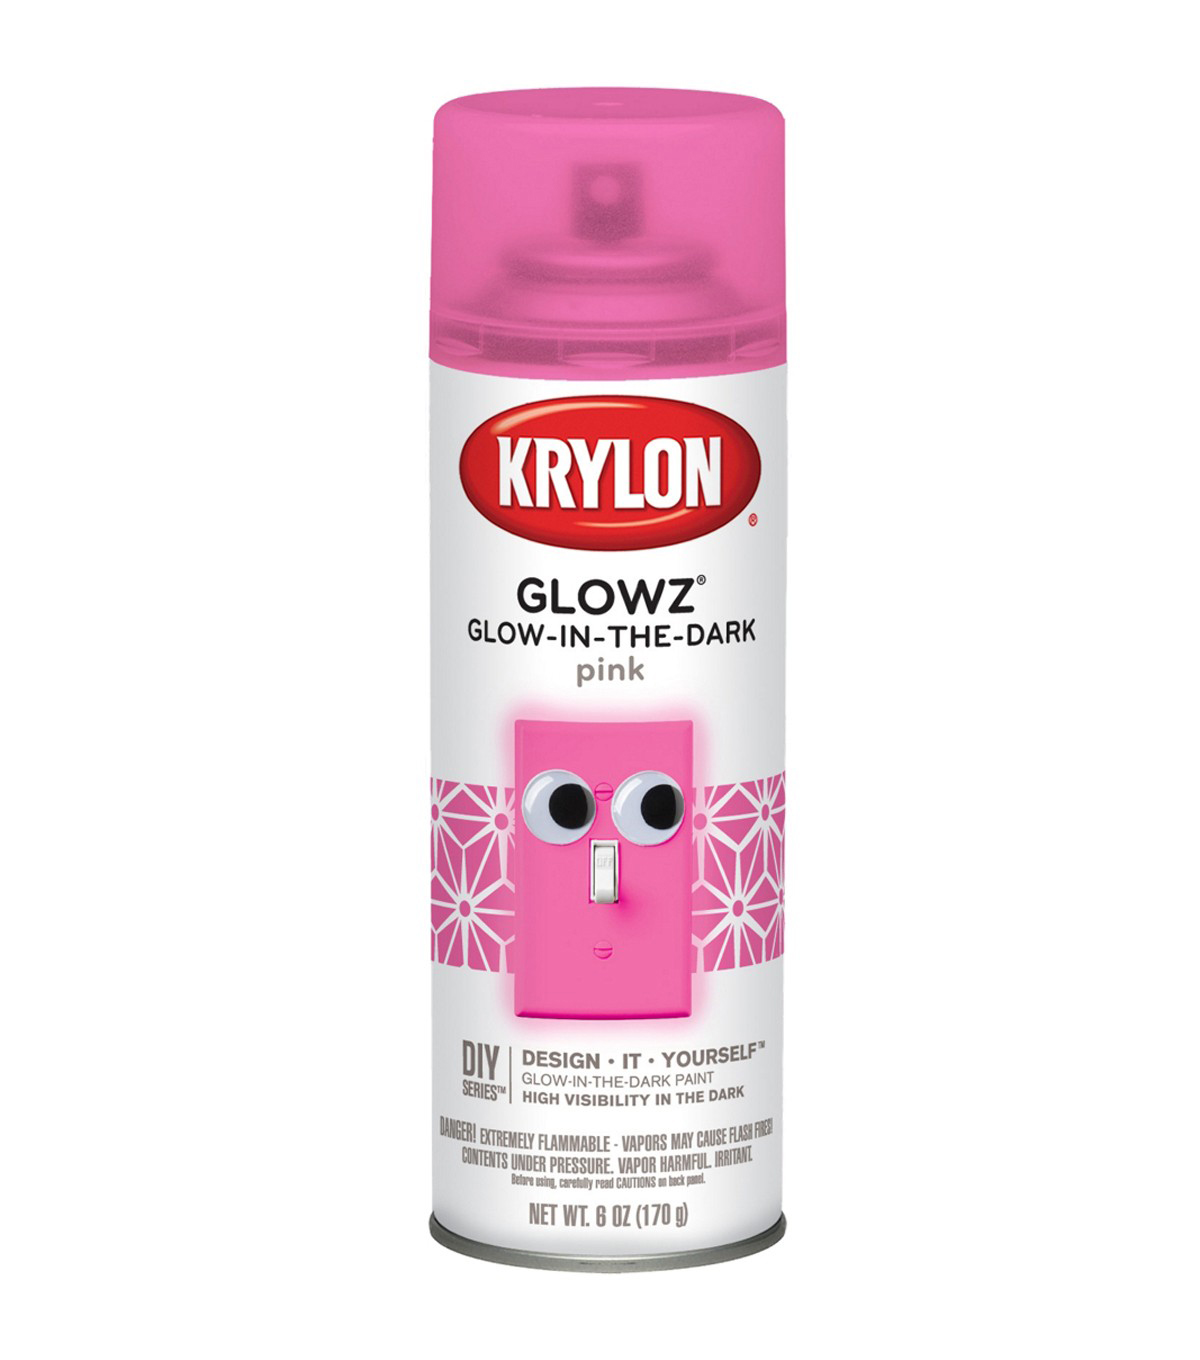 Krylon Glow-in-the-Dark 6 oz. Aerosol Spray